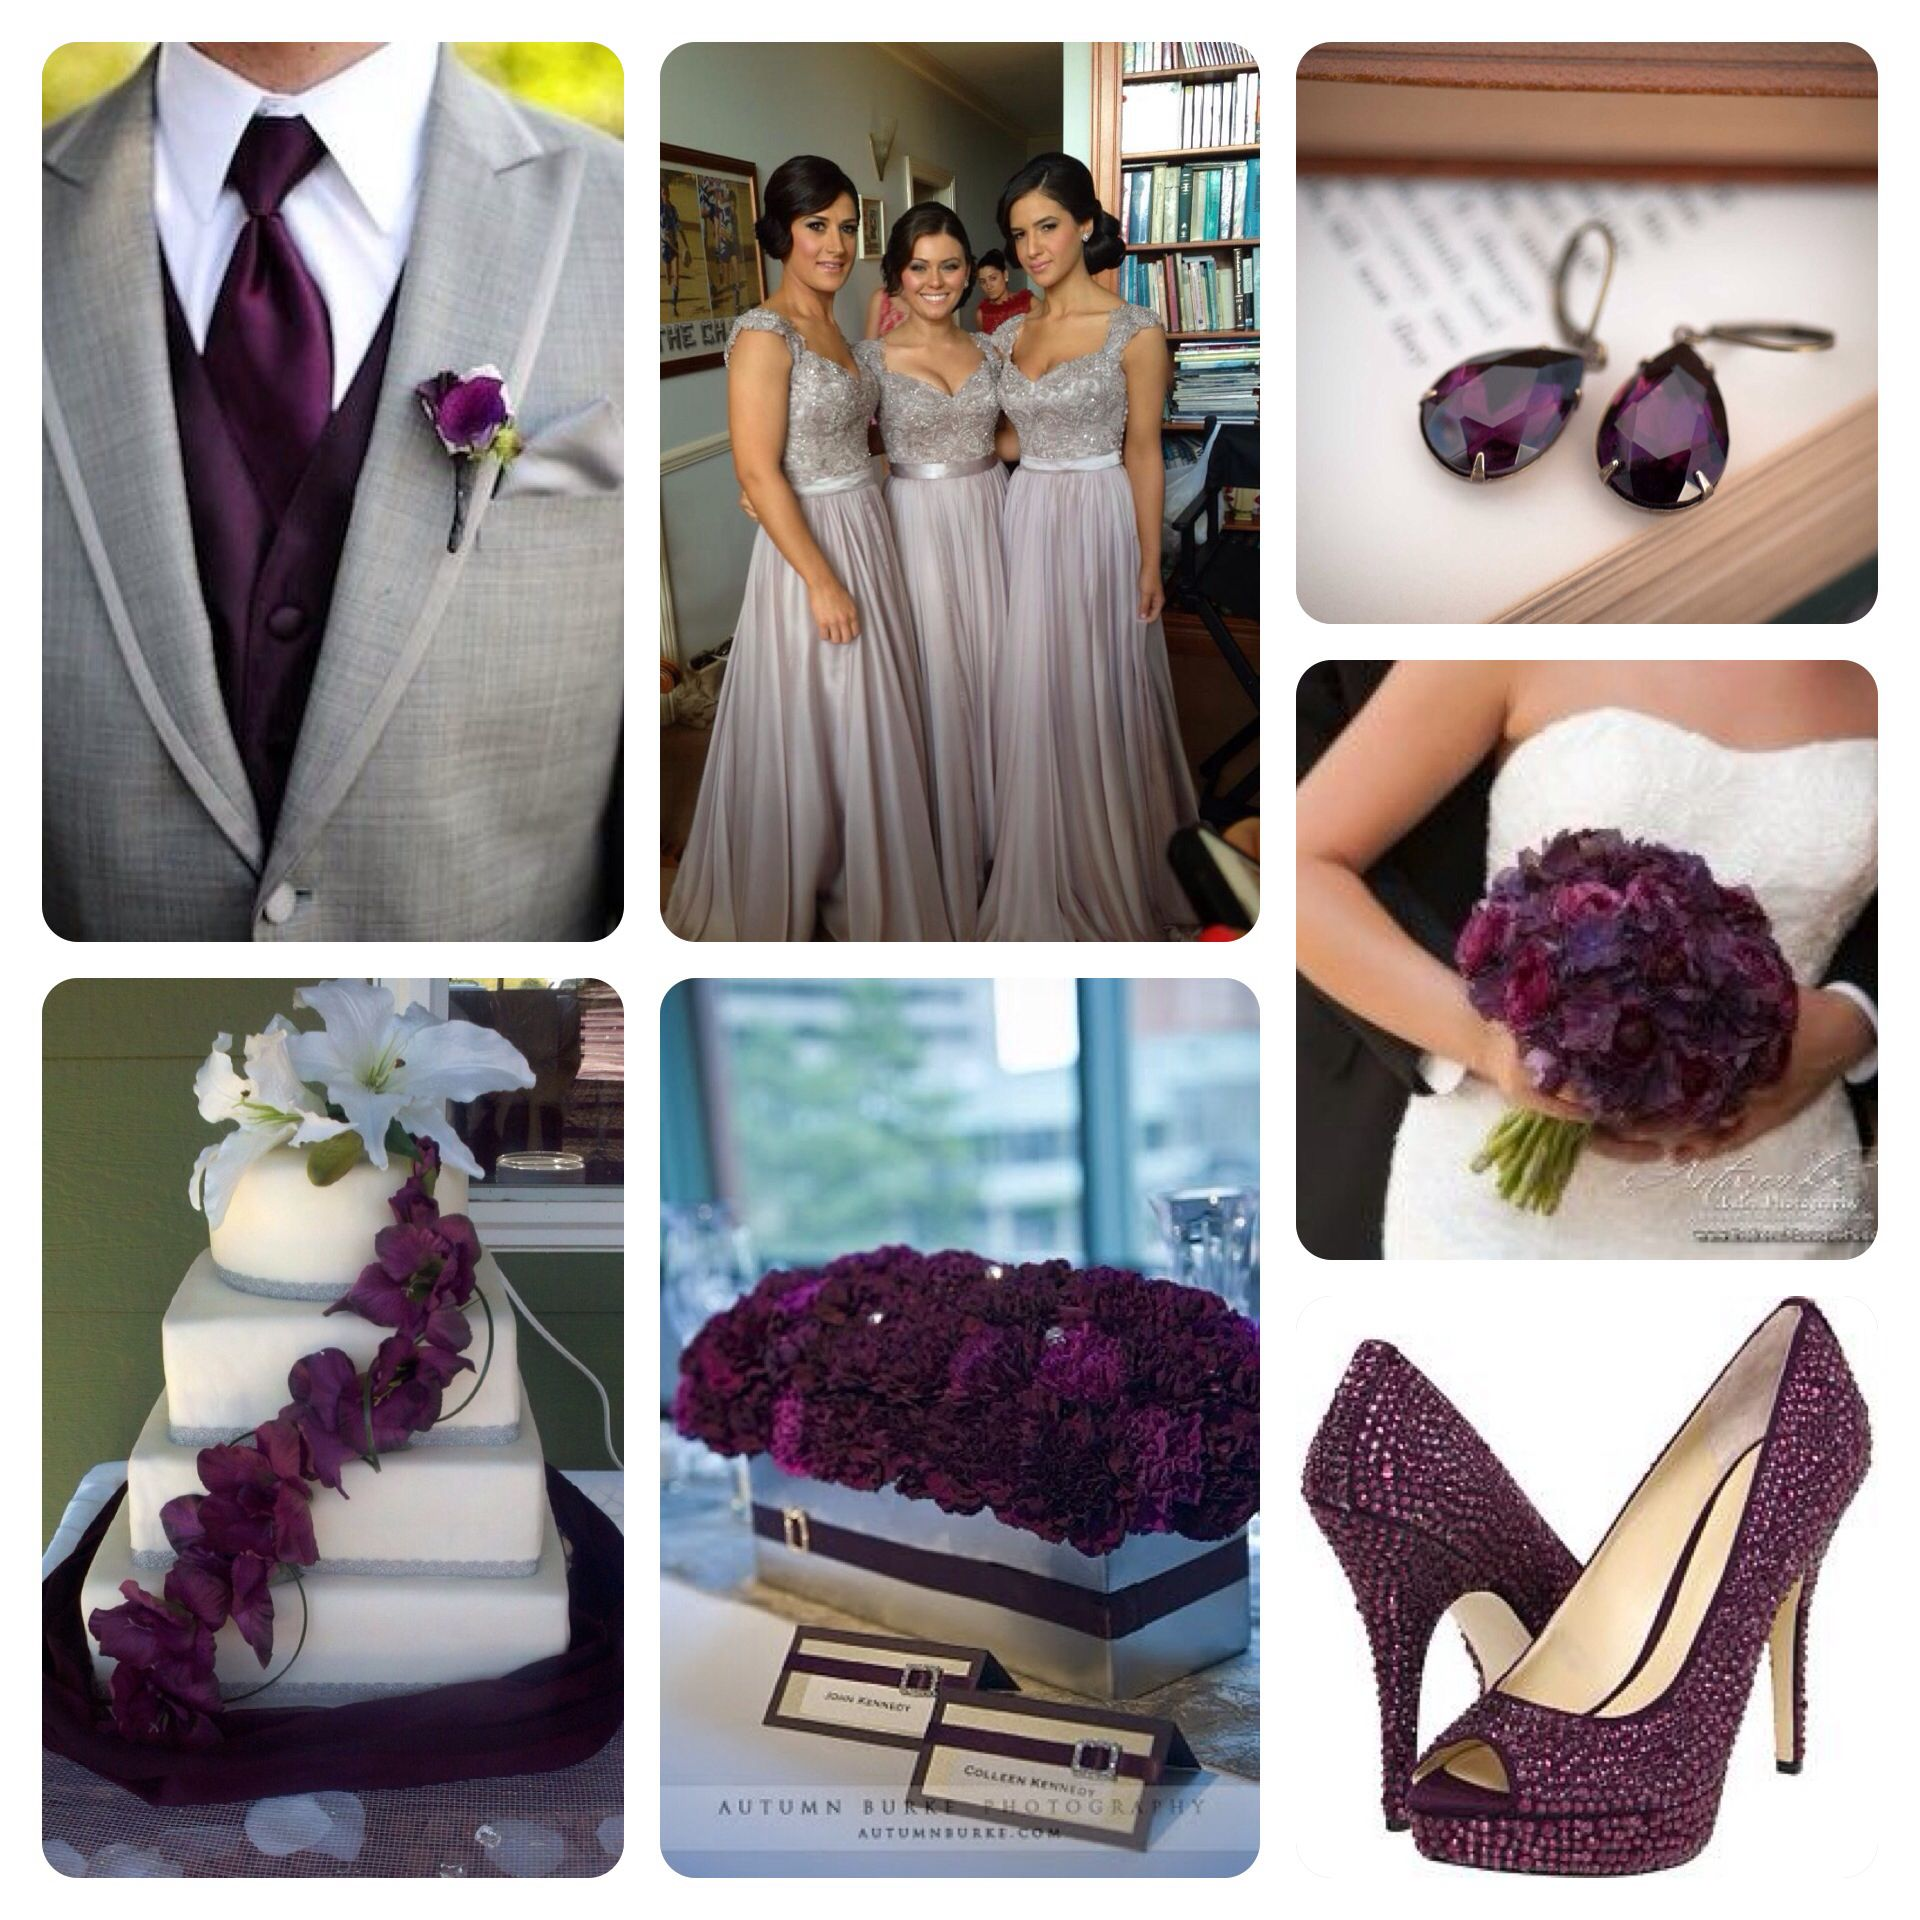 Hochzeit Farben Grey And Dark Plum Wedding In Love With With The Grooms